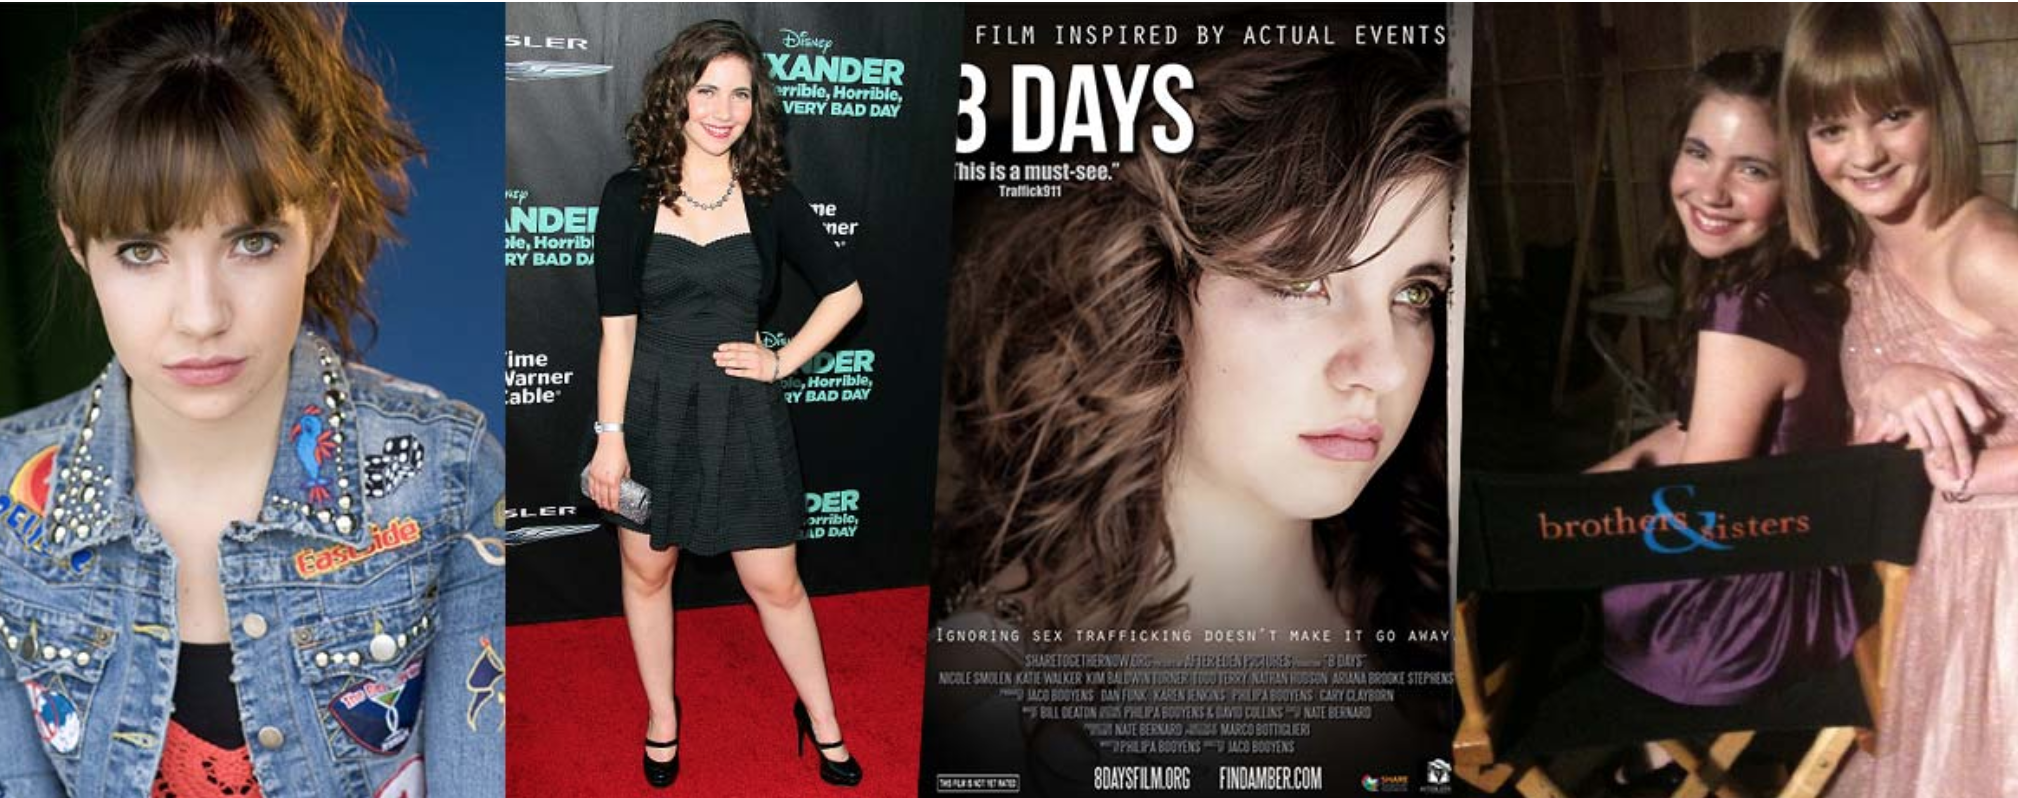 Nicole Smolen grew up from a child star to a teen starring in the international film, 8 Days, about human trafficking.